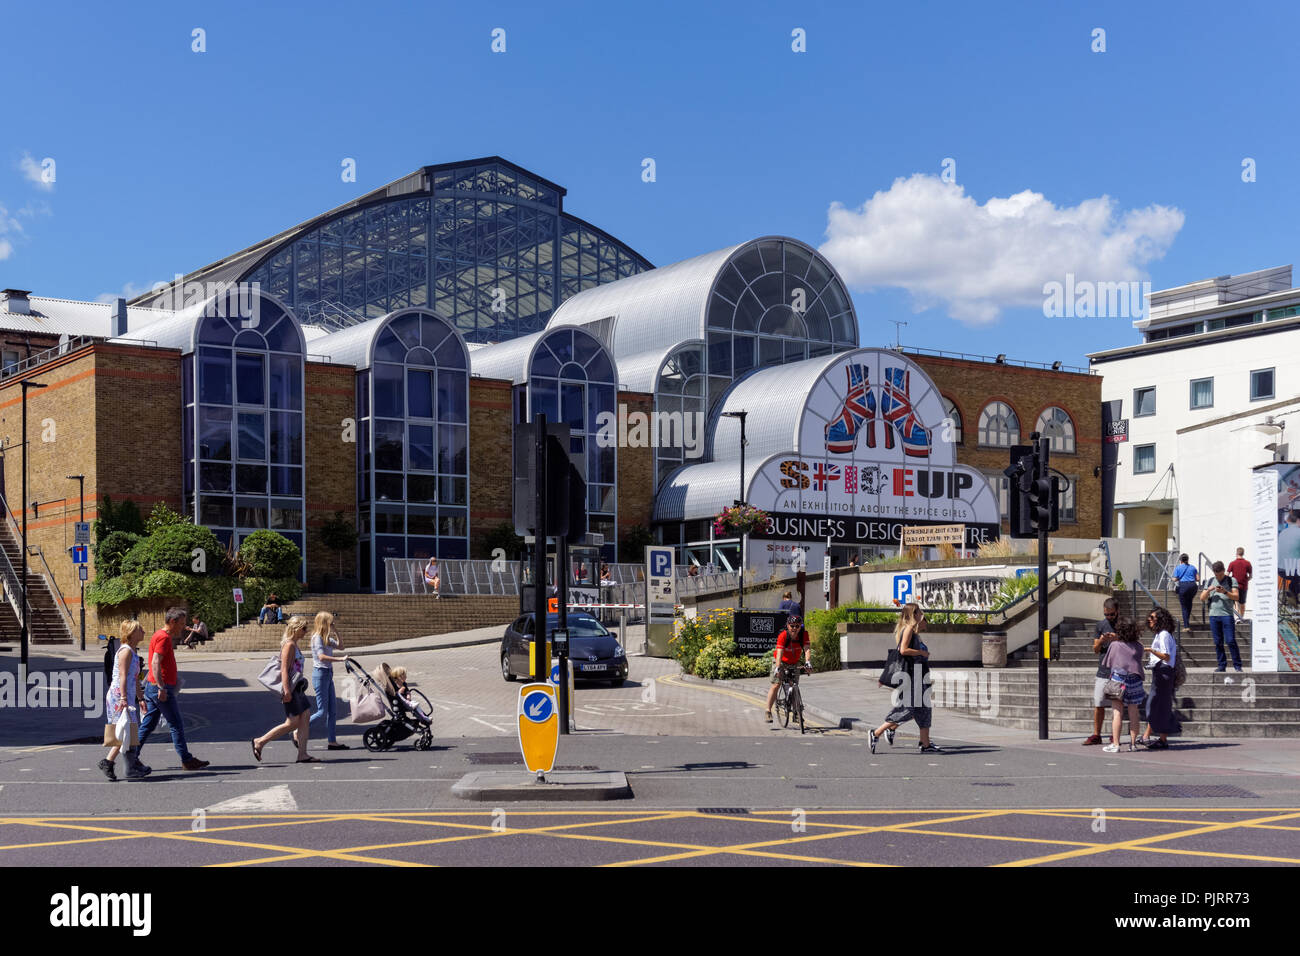 The Angel Islington High Resolution Stock Photography And Images Alamy